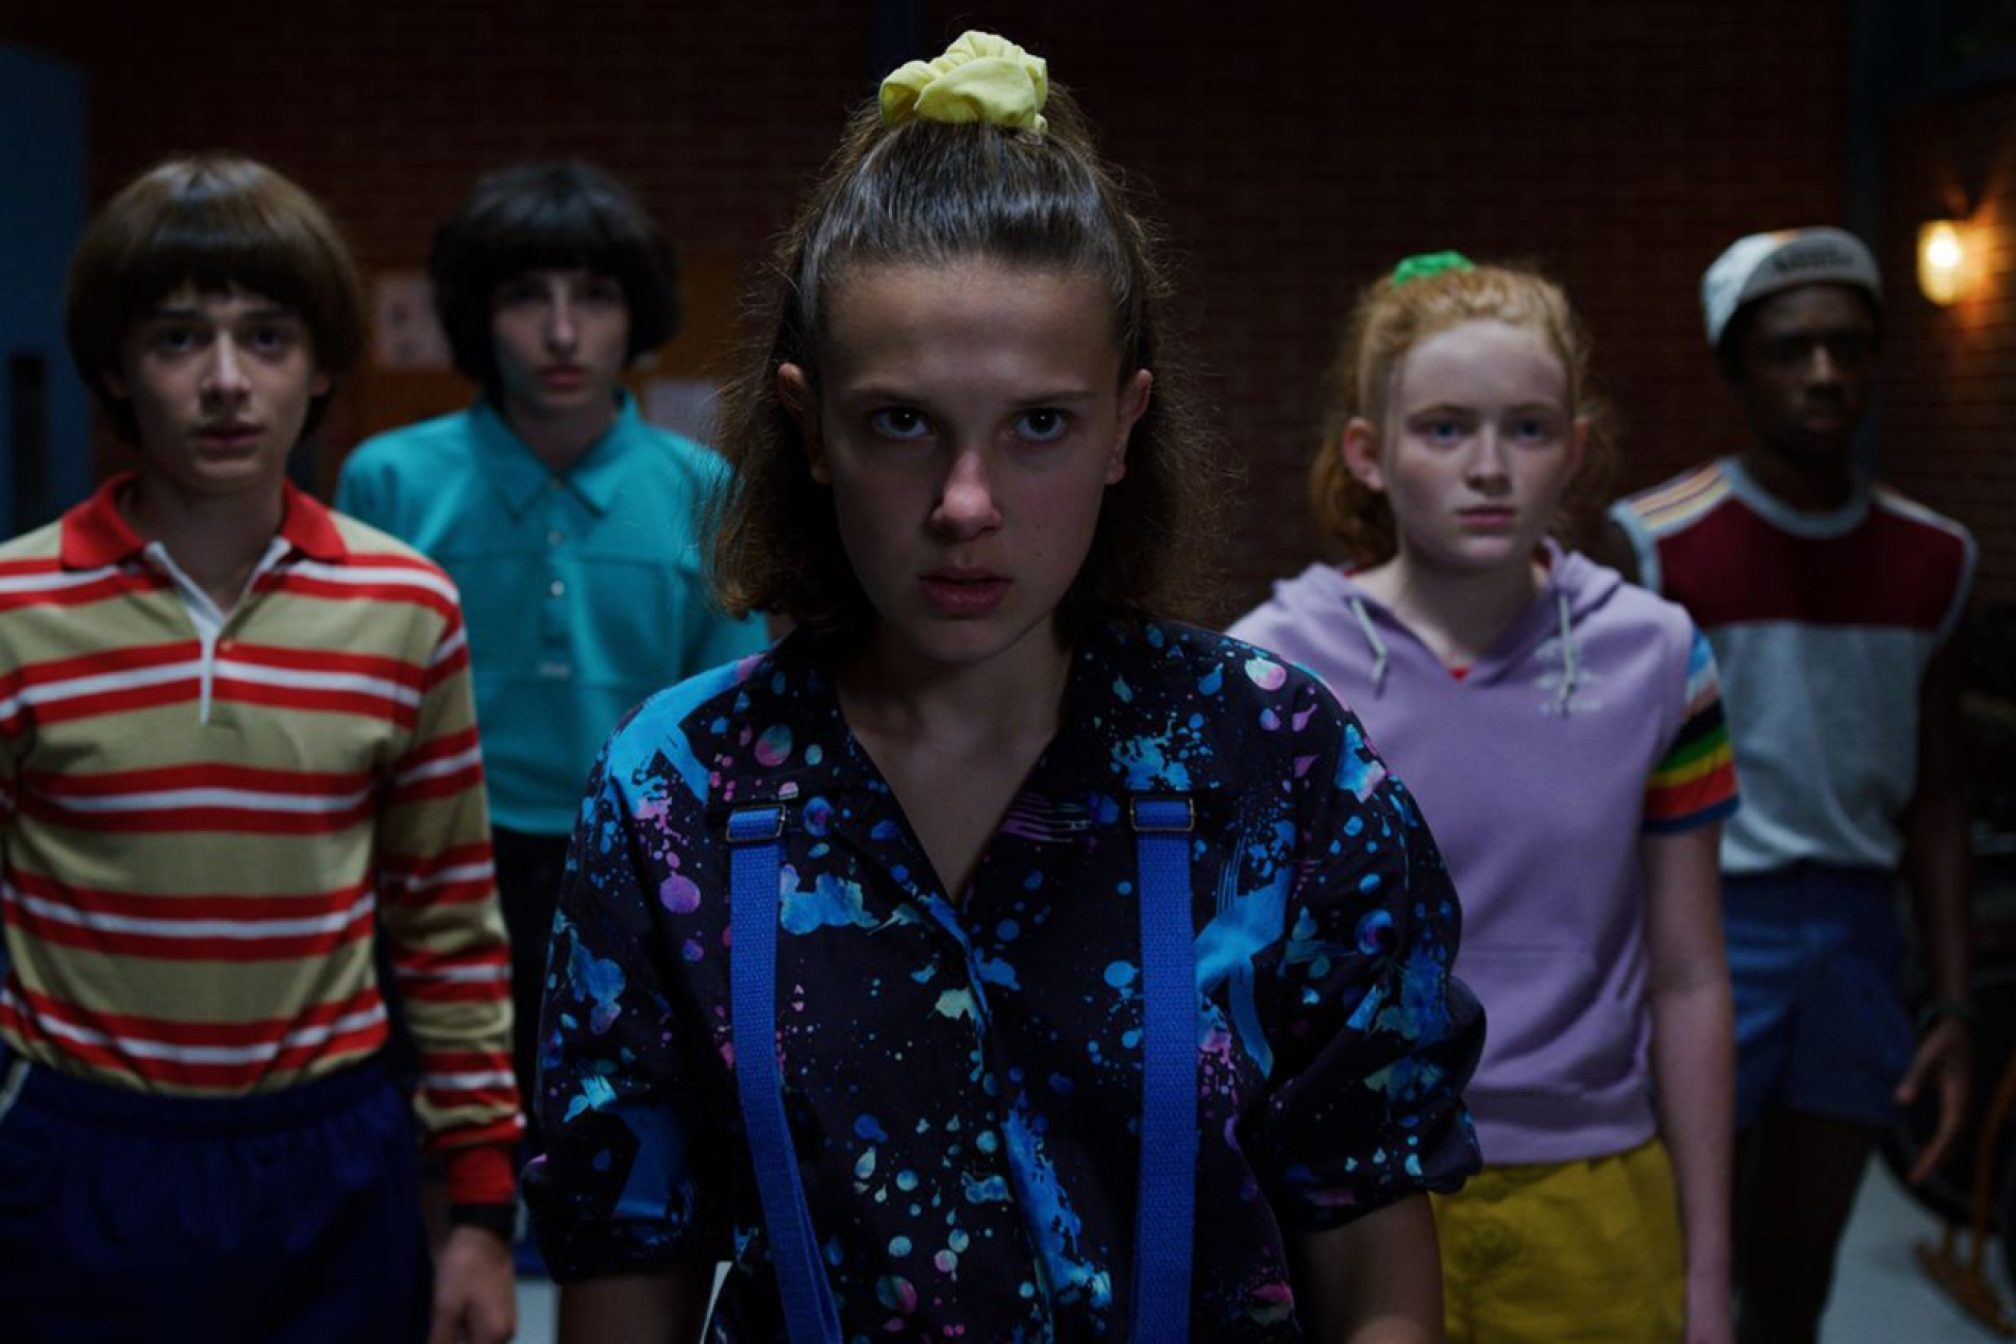 Stranger Things' soundtrack really needs you to understand